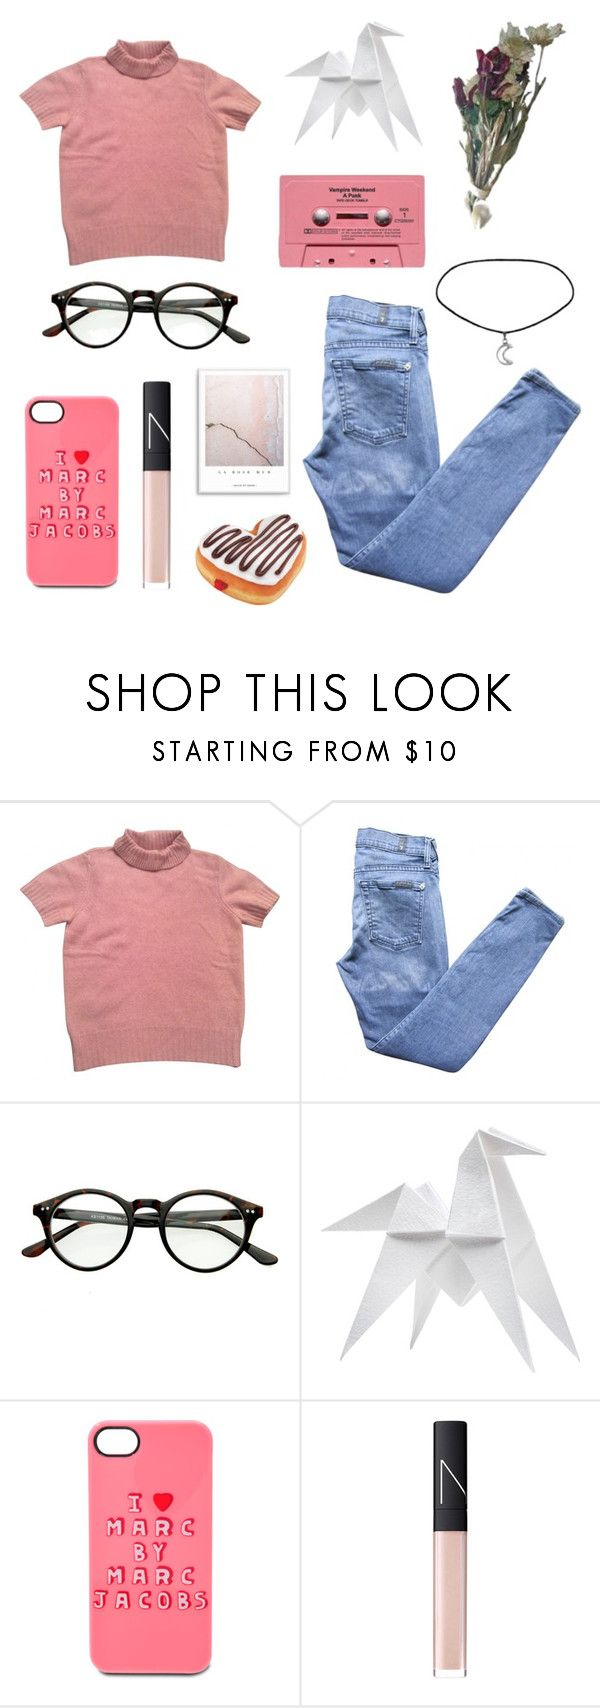 """""""Youth"""" by parais0x ❤ liked on Polyvore featuring Kenzo, 7 For All Mankind, Hermès, Marc by Marc Jacobs and NARS Cosmetics"""